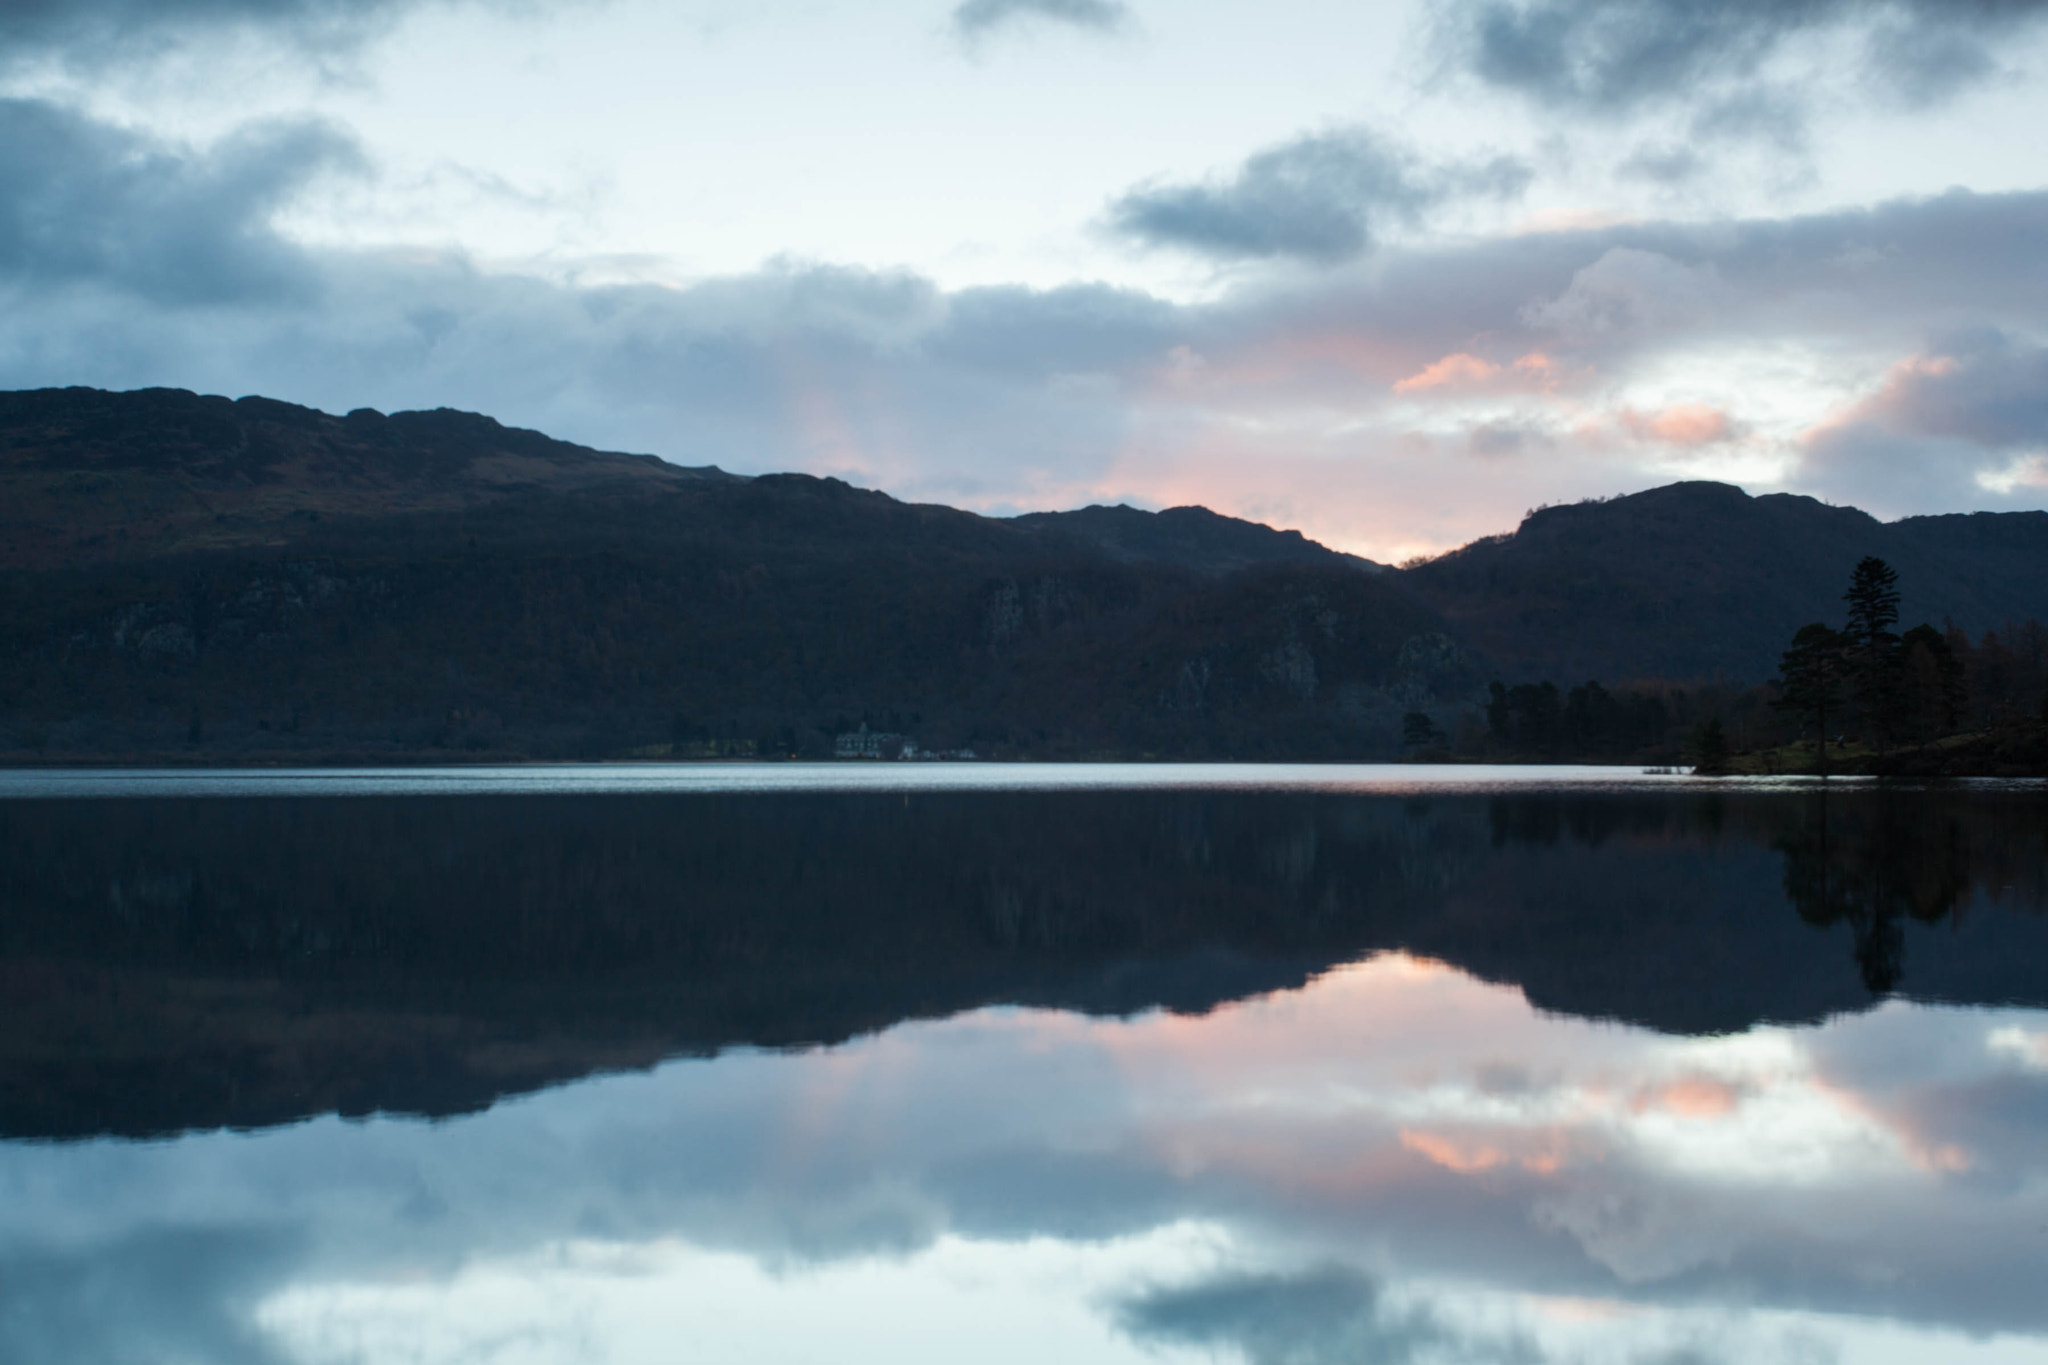 Photograph Reflections Derwent Water by Carl Mickleburgh on 500px